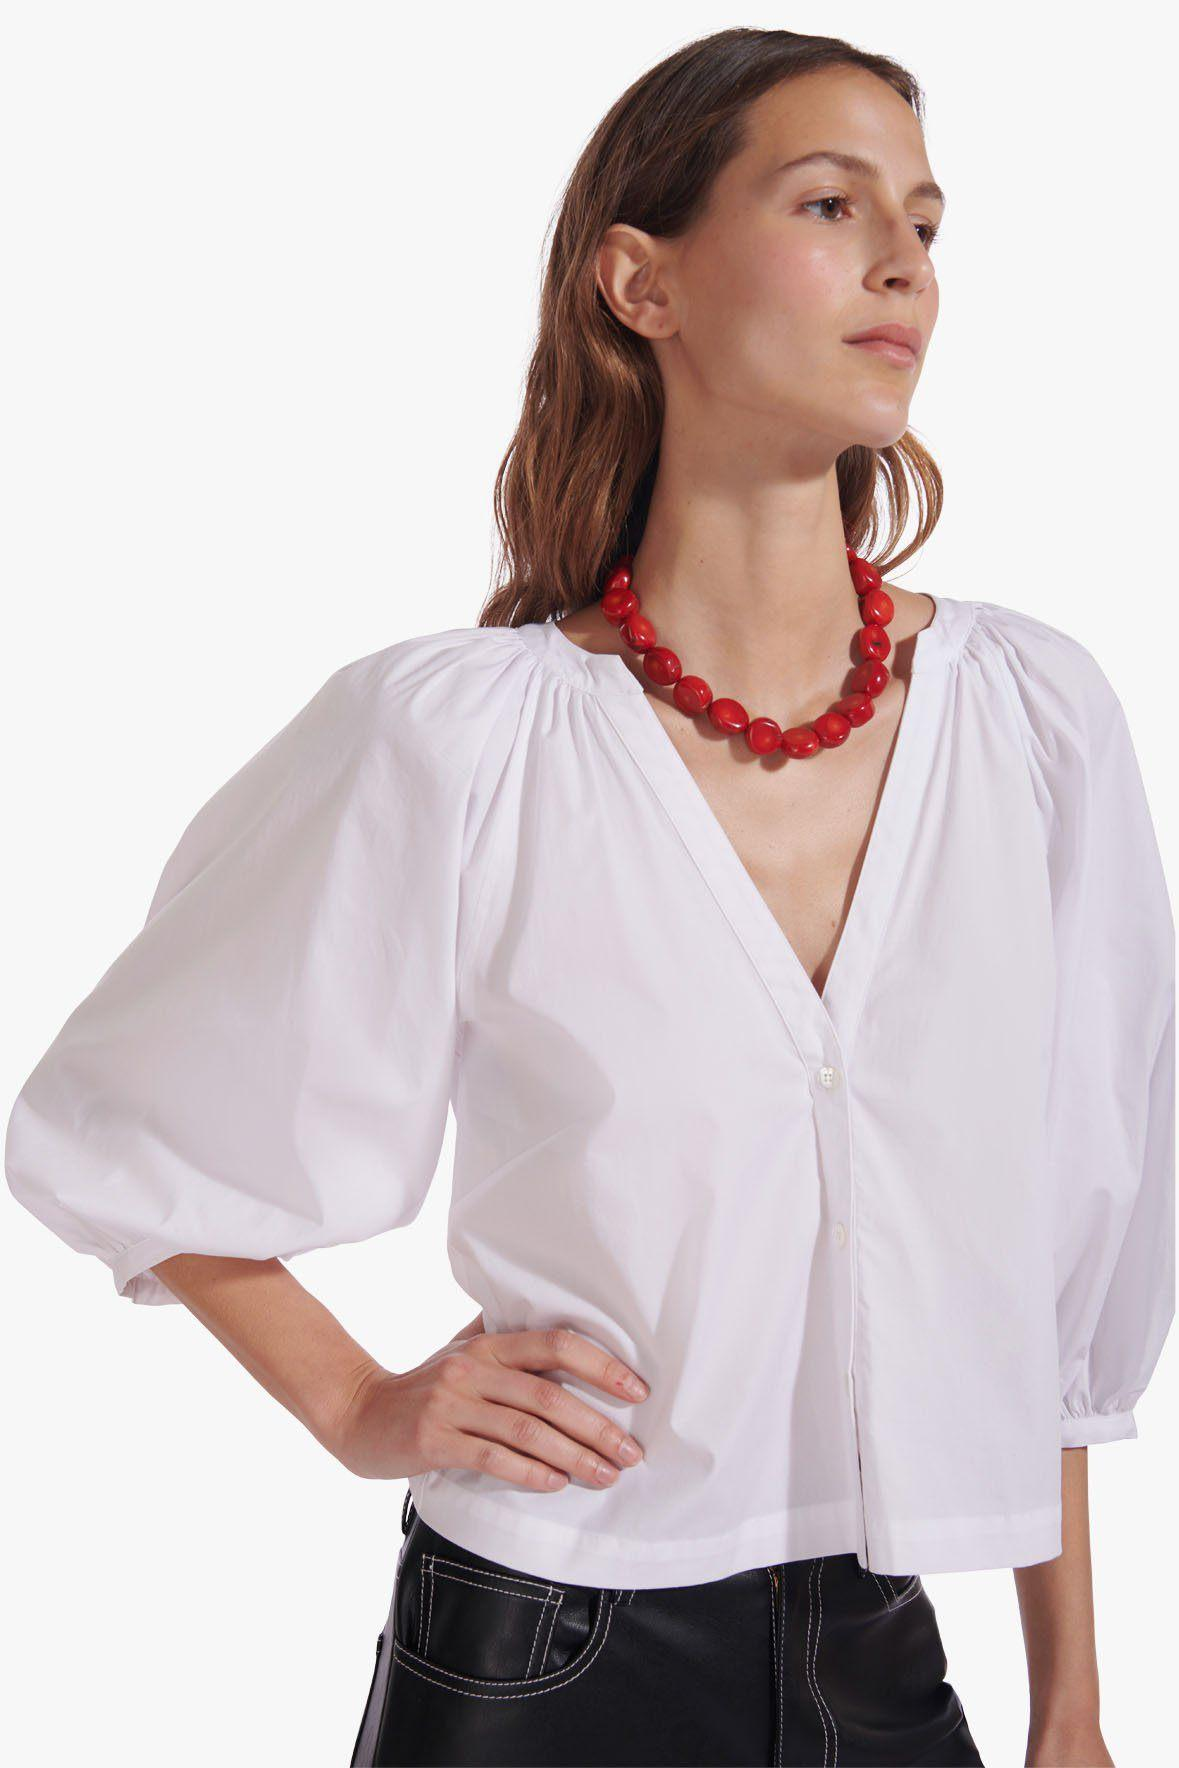 DILL TOP | WHITE